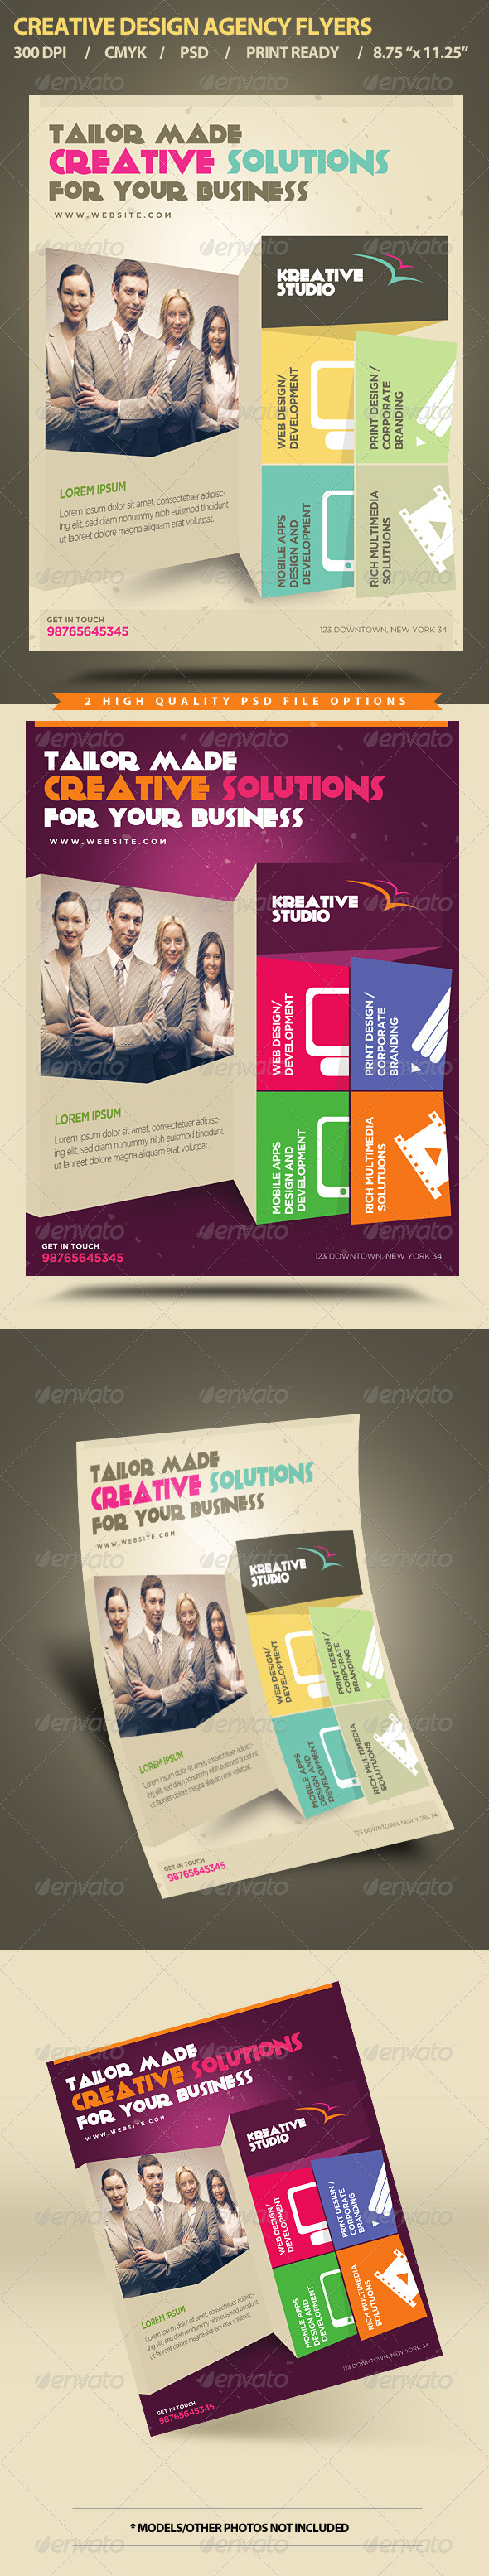 GraphicRiver Creative Design Agency Flyers 5500631